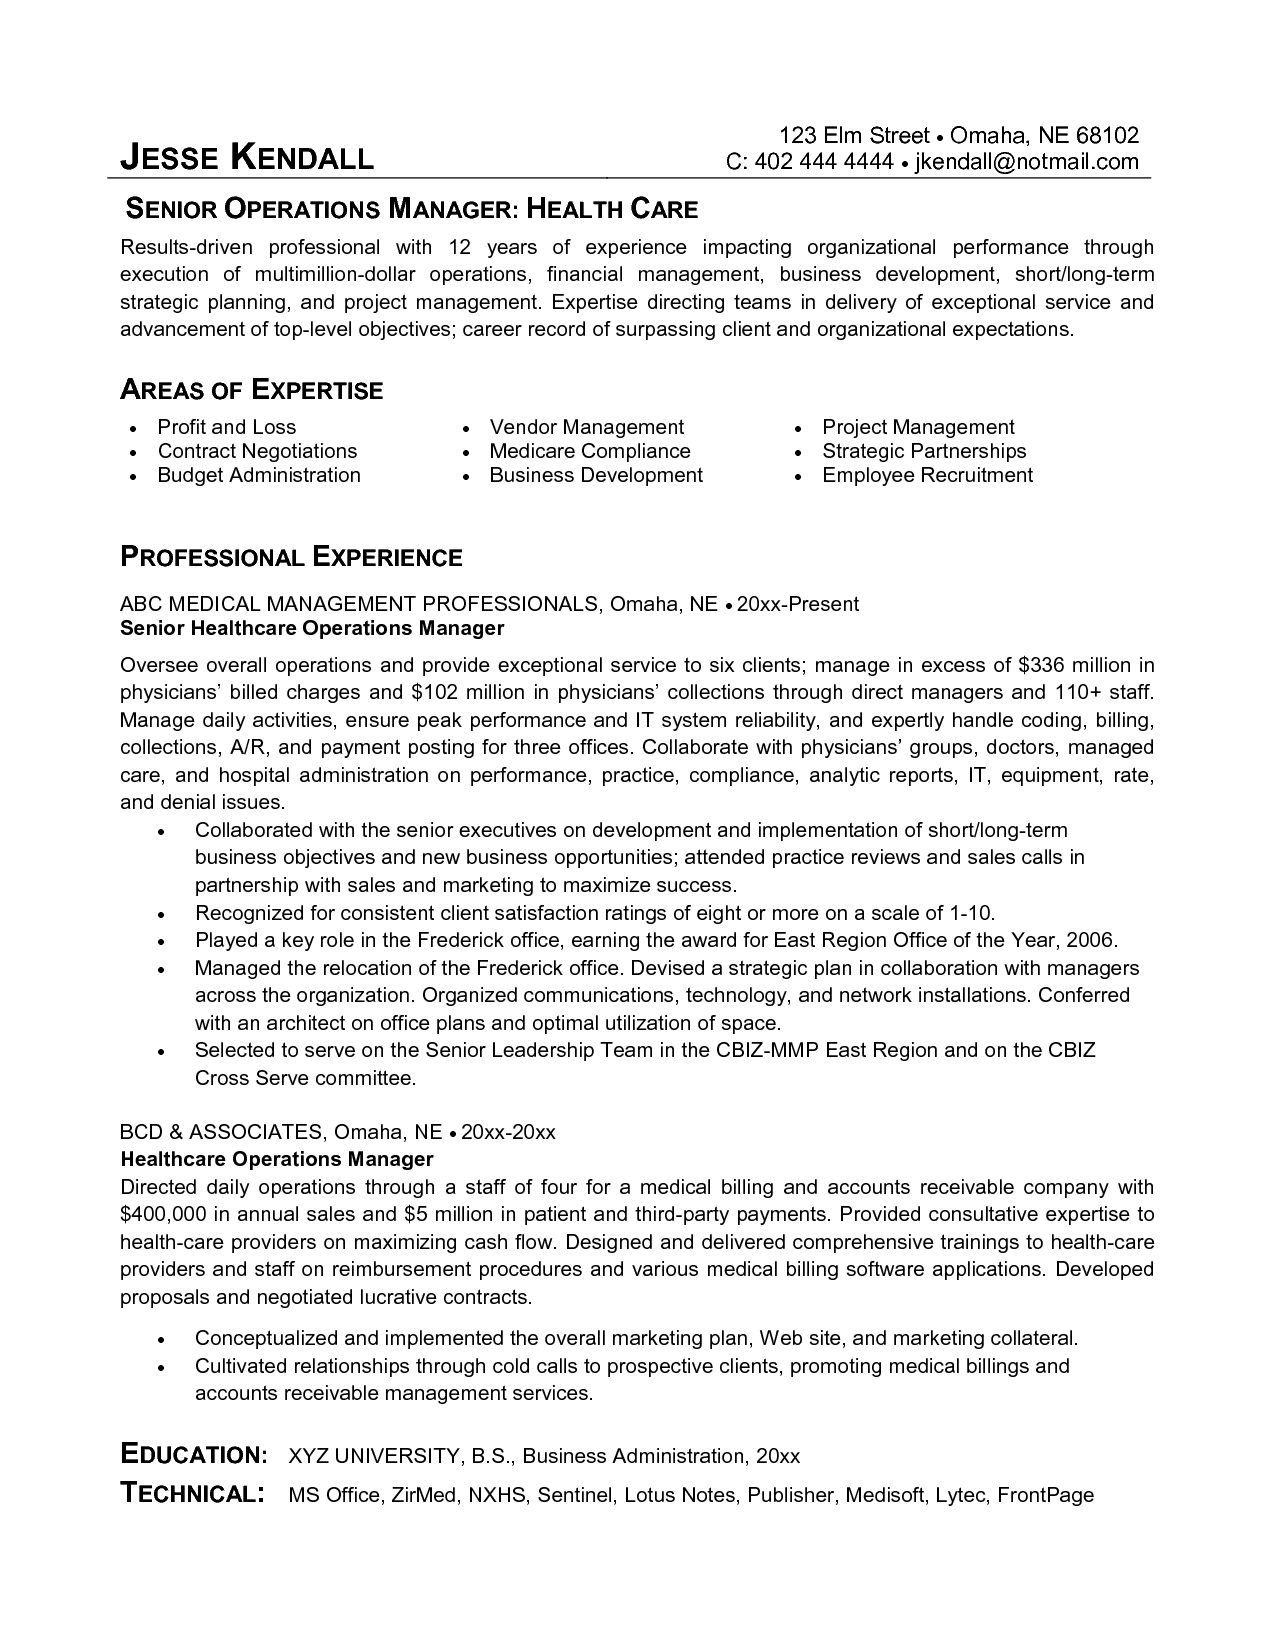 Resume Examples Healthcare Management Resume objective